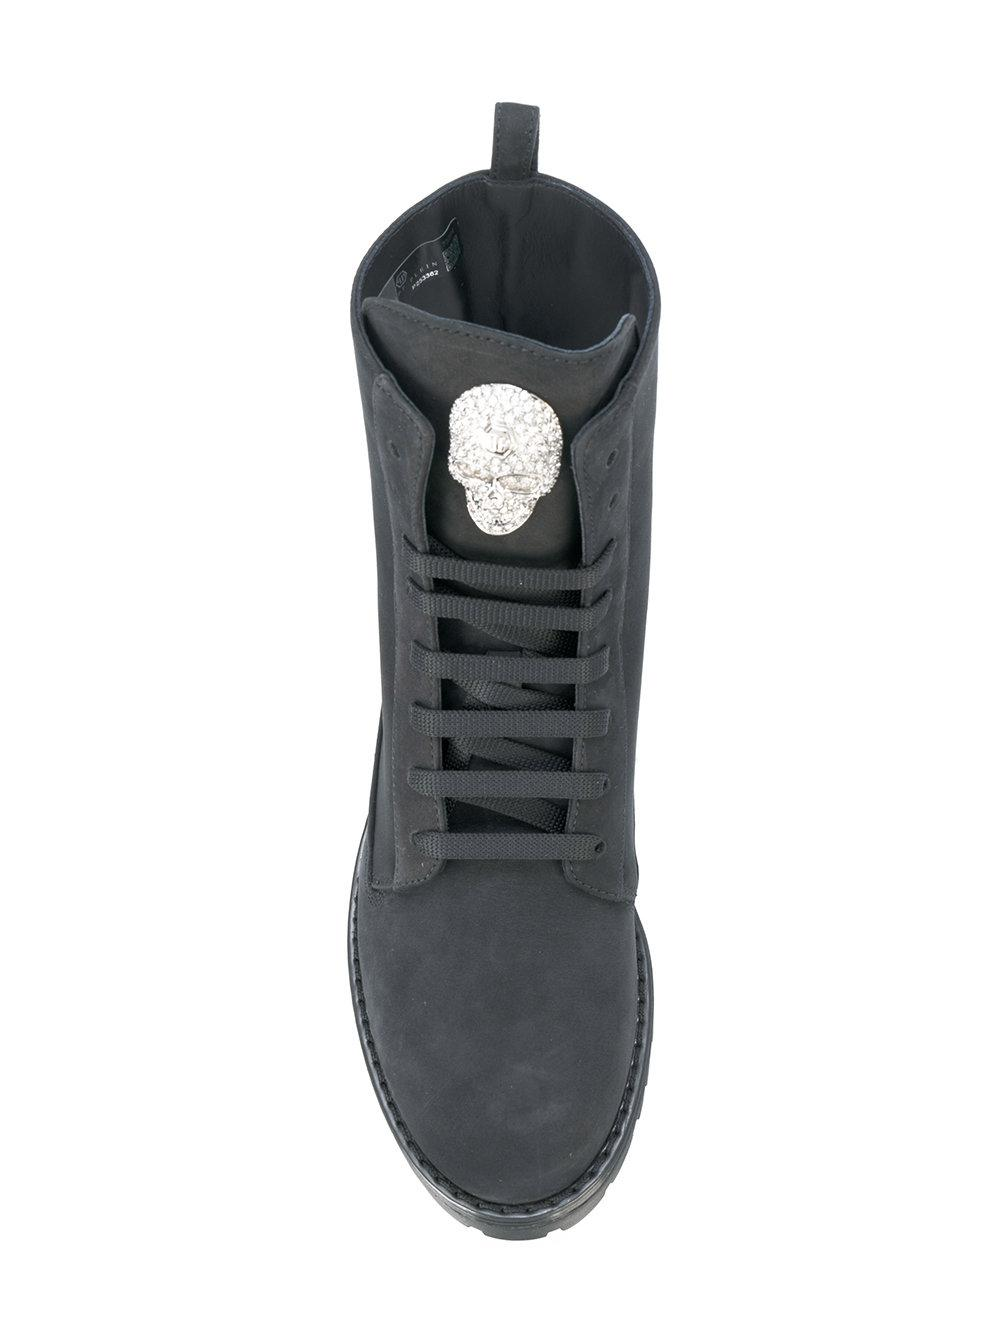 Philipp Plein Leather Dary Boots in Black